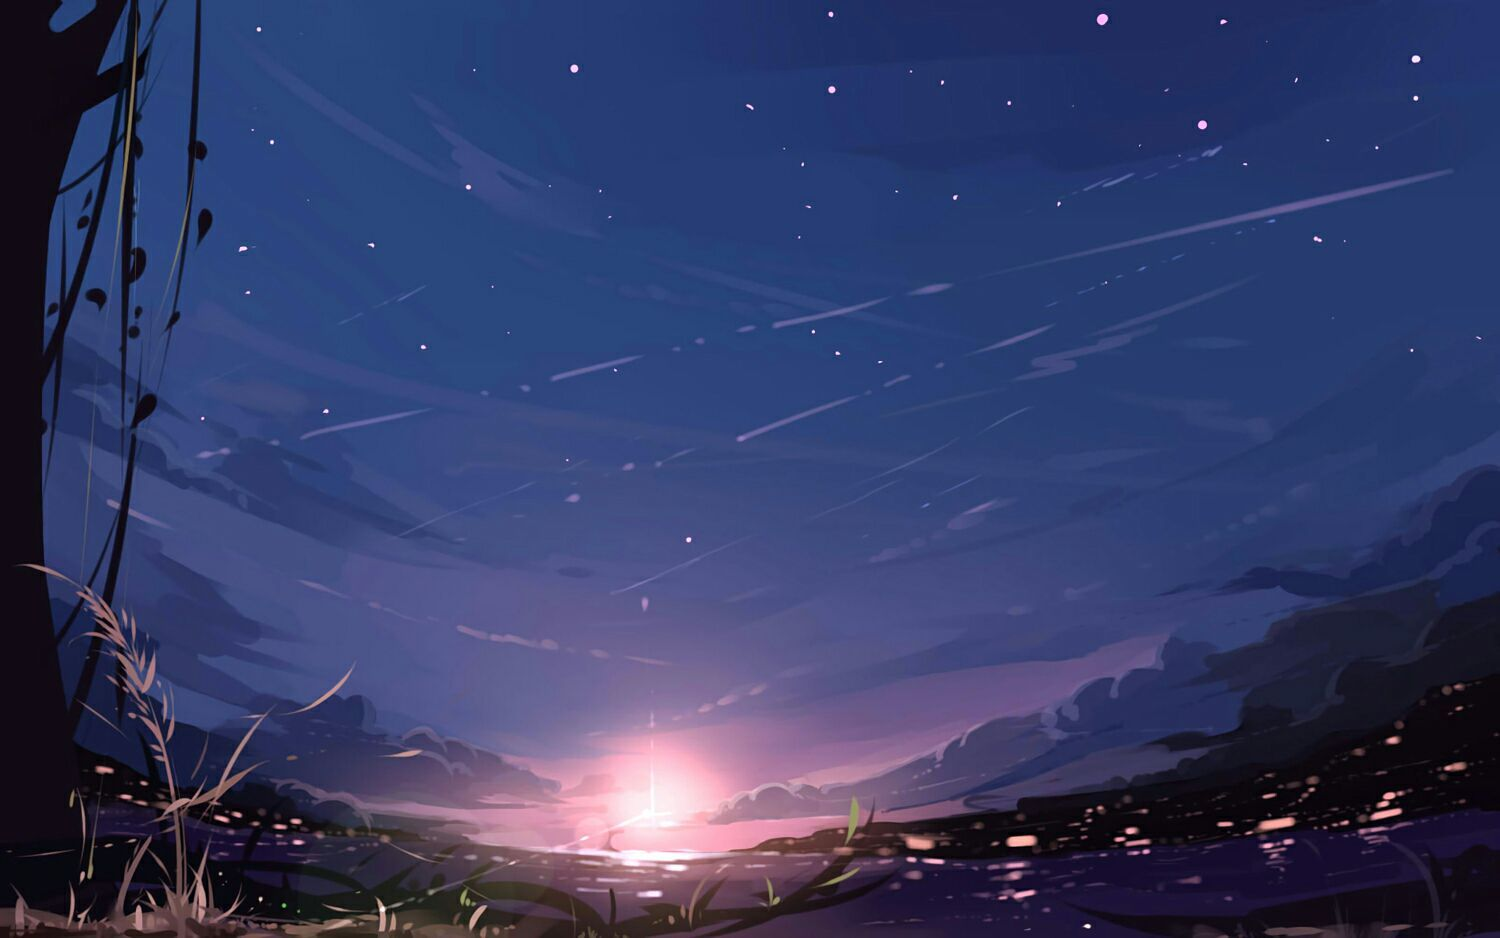 Where Stories Live Anime Background Anime Backgrounds Wallpapers Background Images Anime scenery wallpaper night